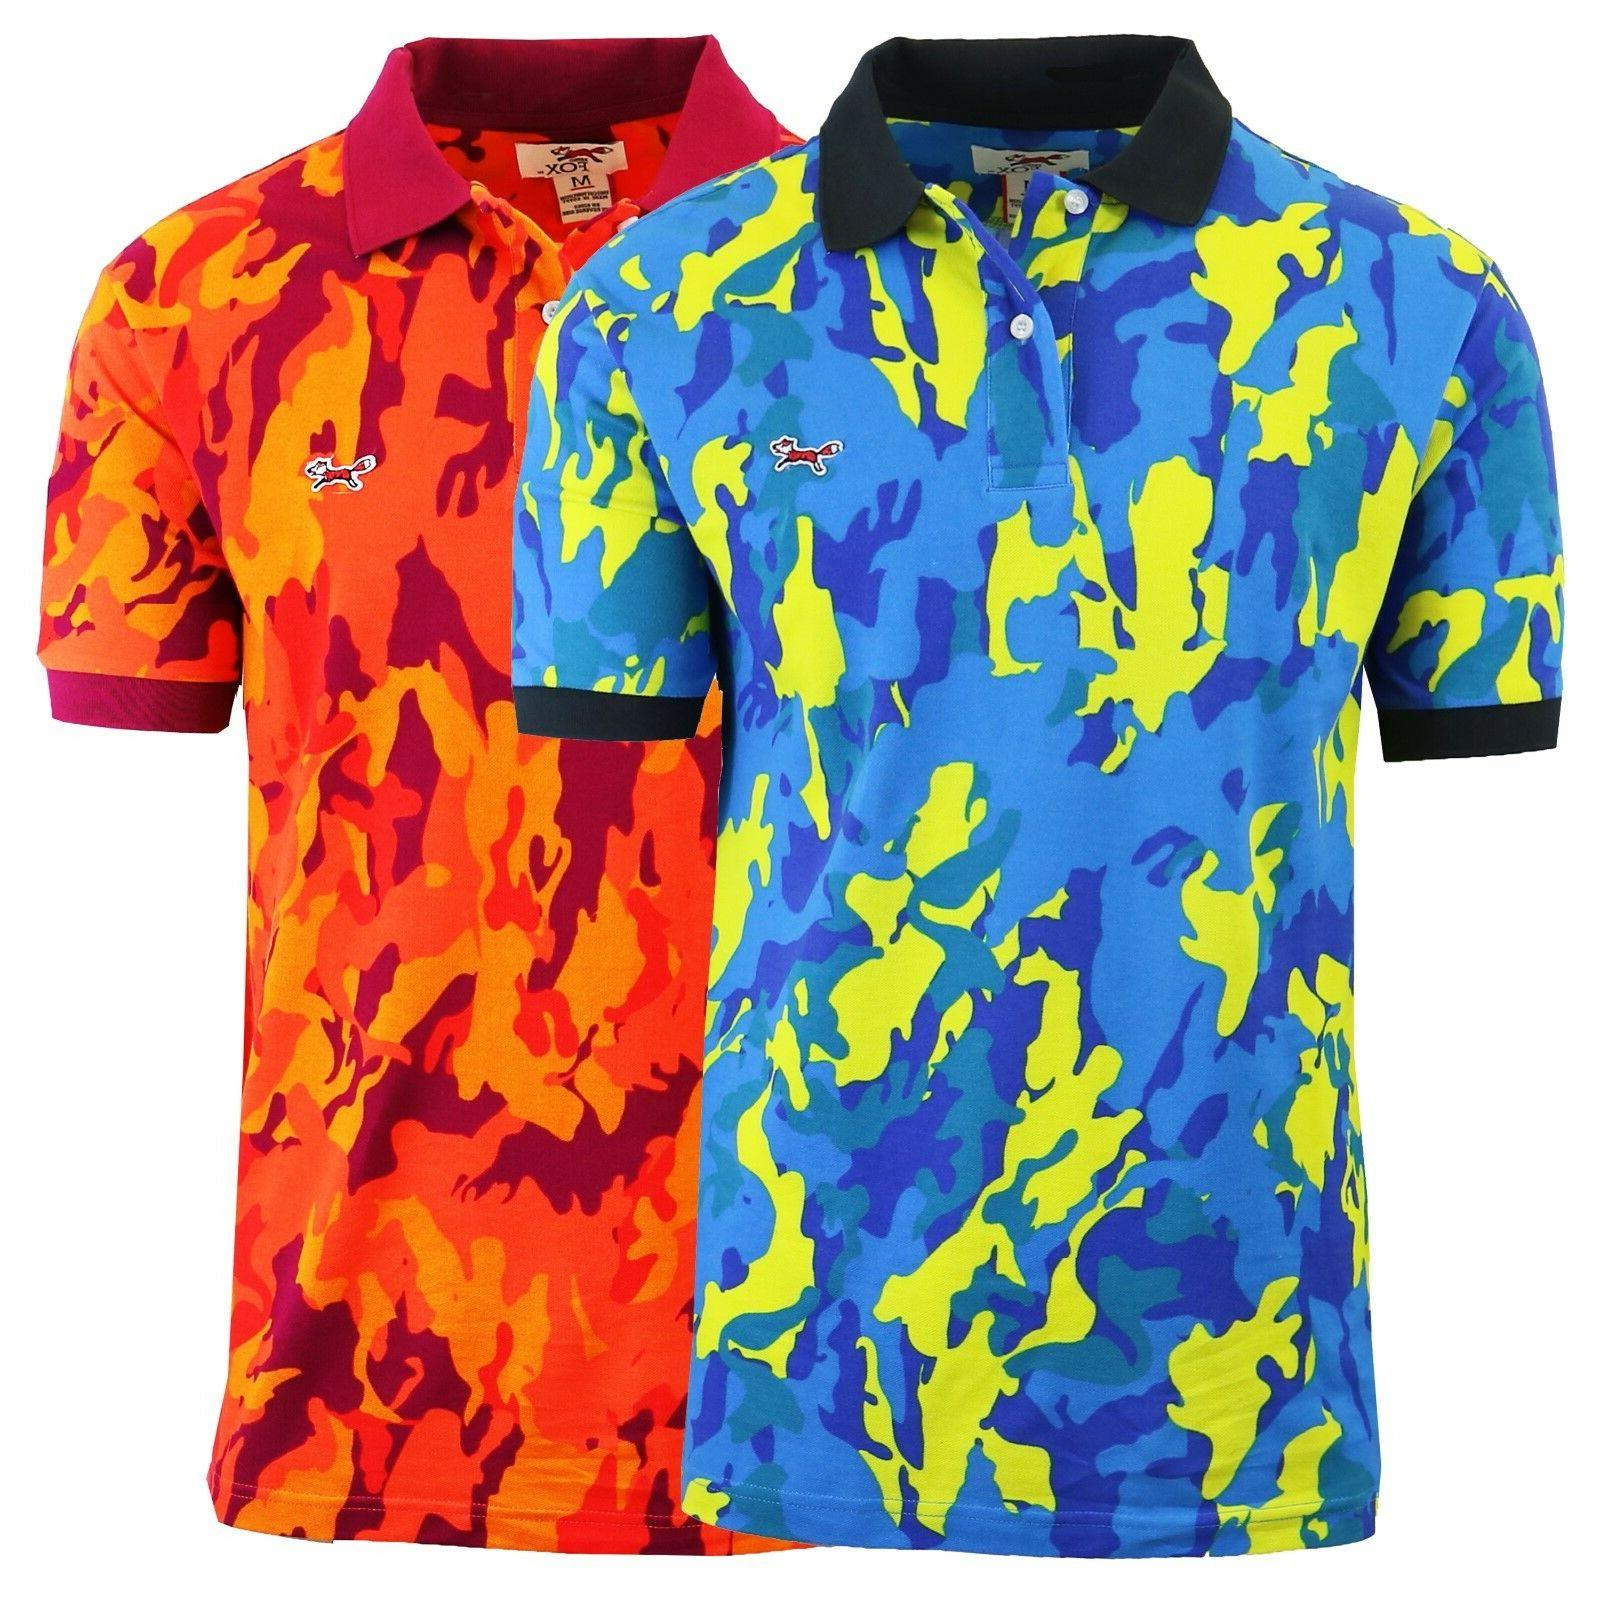 Mens Polo Shirts Camo Printed Cotton Slim Fit Lounge Dress C